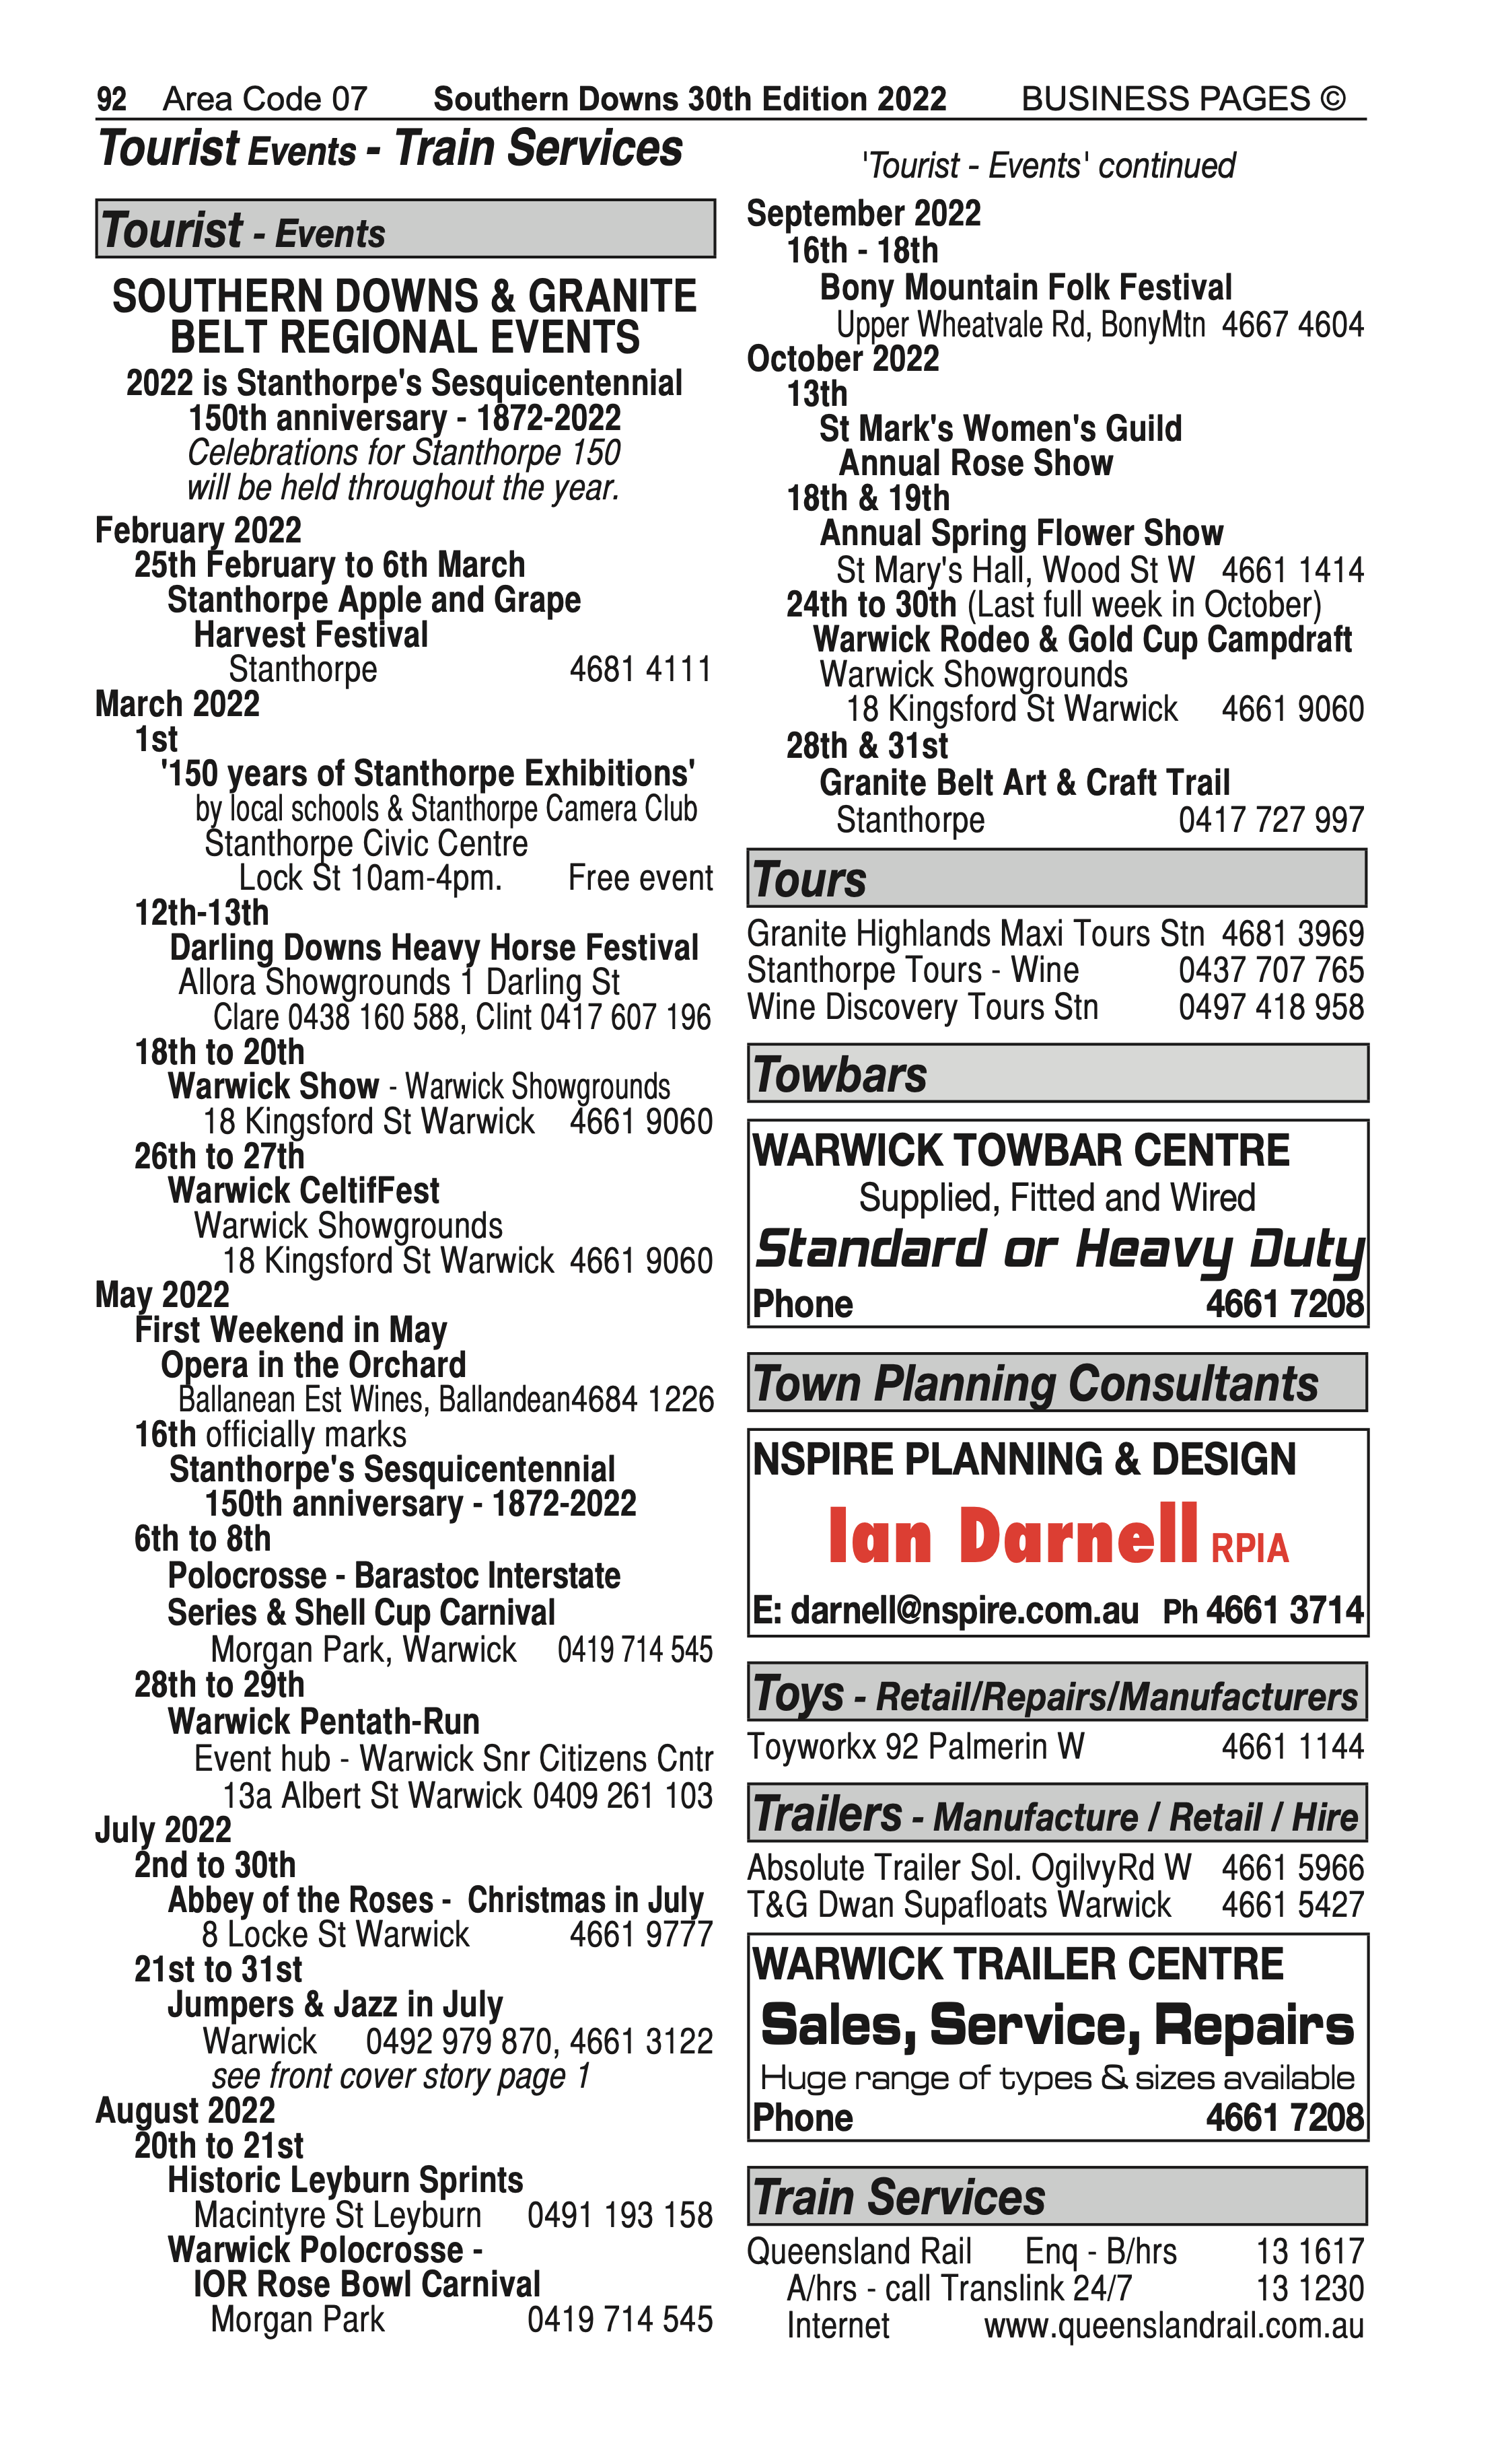 George & Fuhrmann (Holdings) Pty Ltd | Real Estate Agents in Warwick | PBezy Pocket Books local directories - page 92